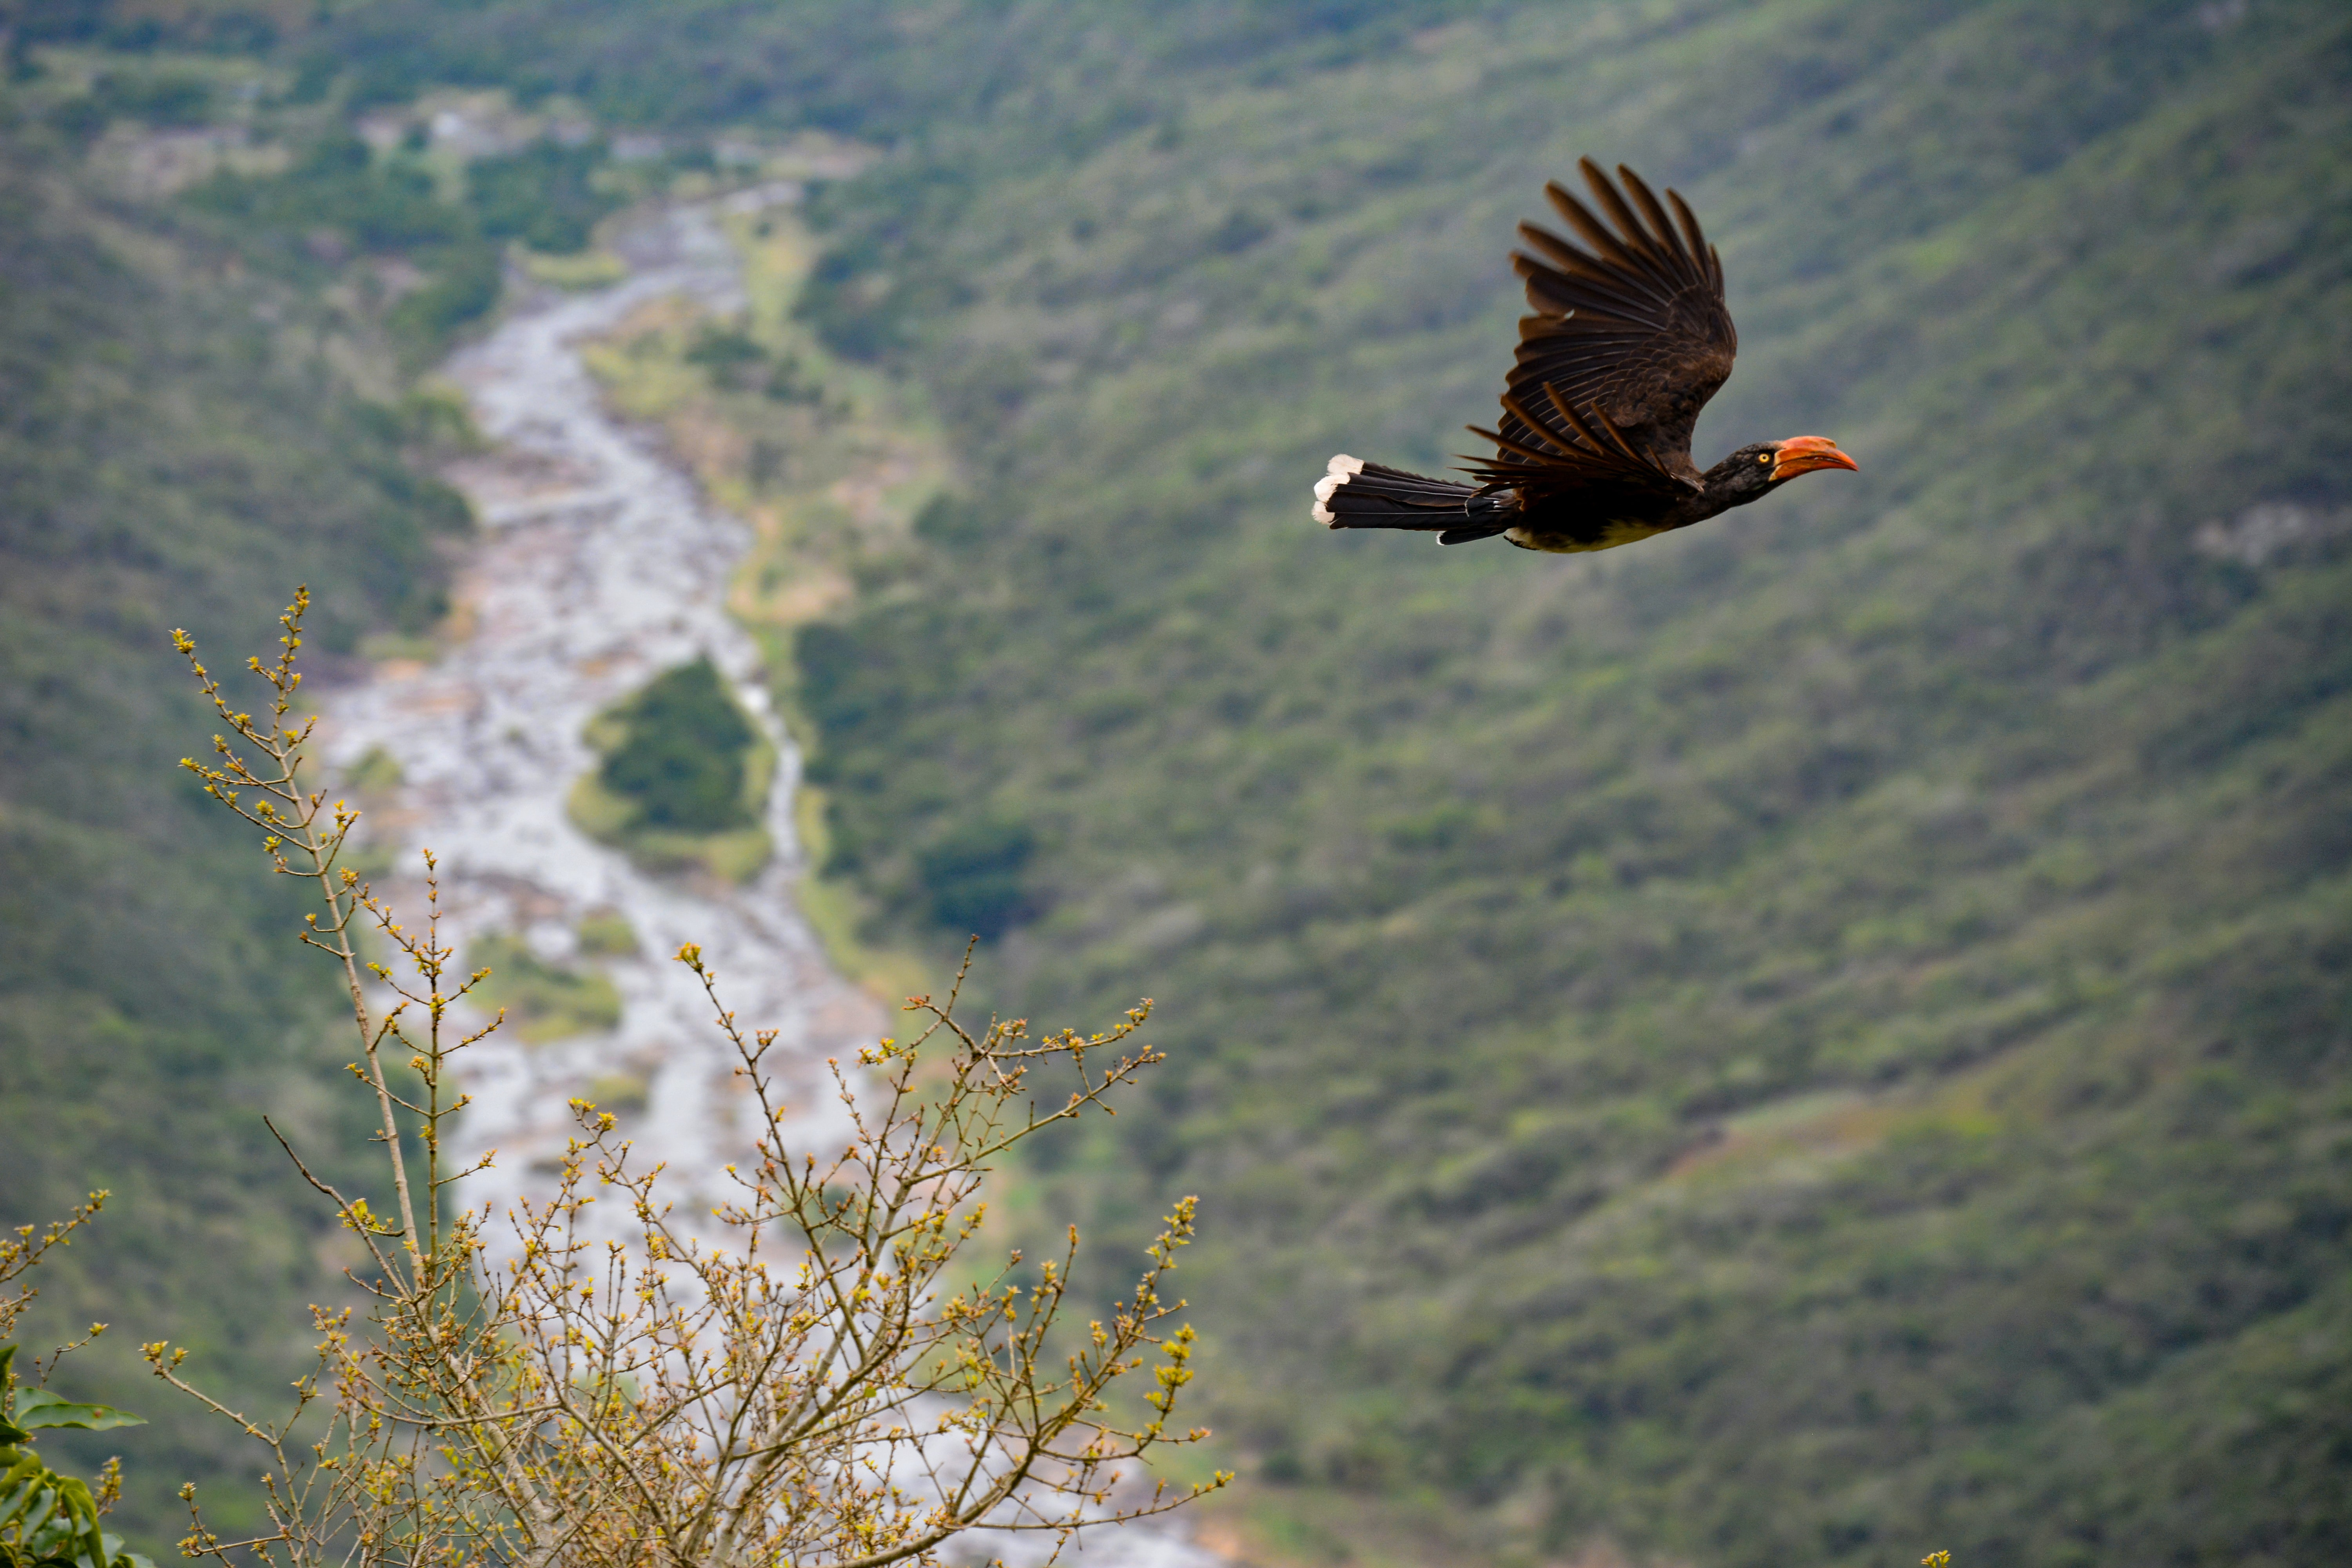 Black bird with orange beak mid flight over a tree and a gorge